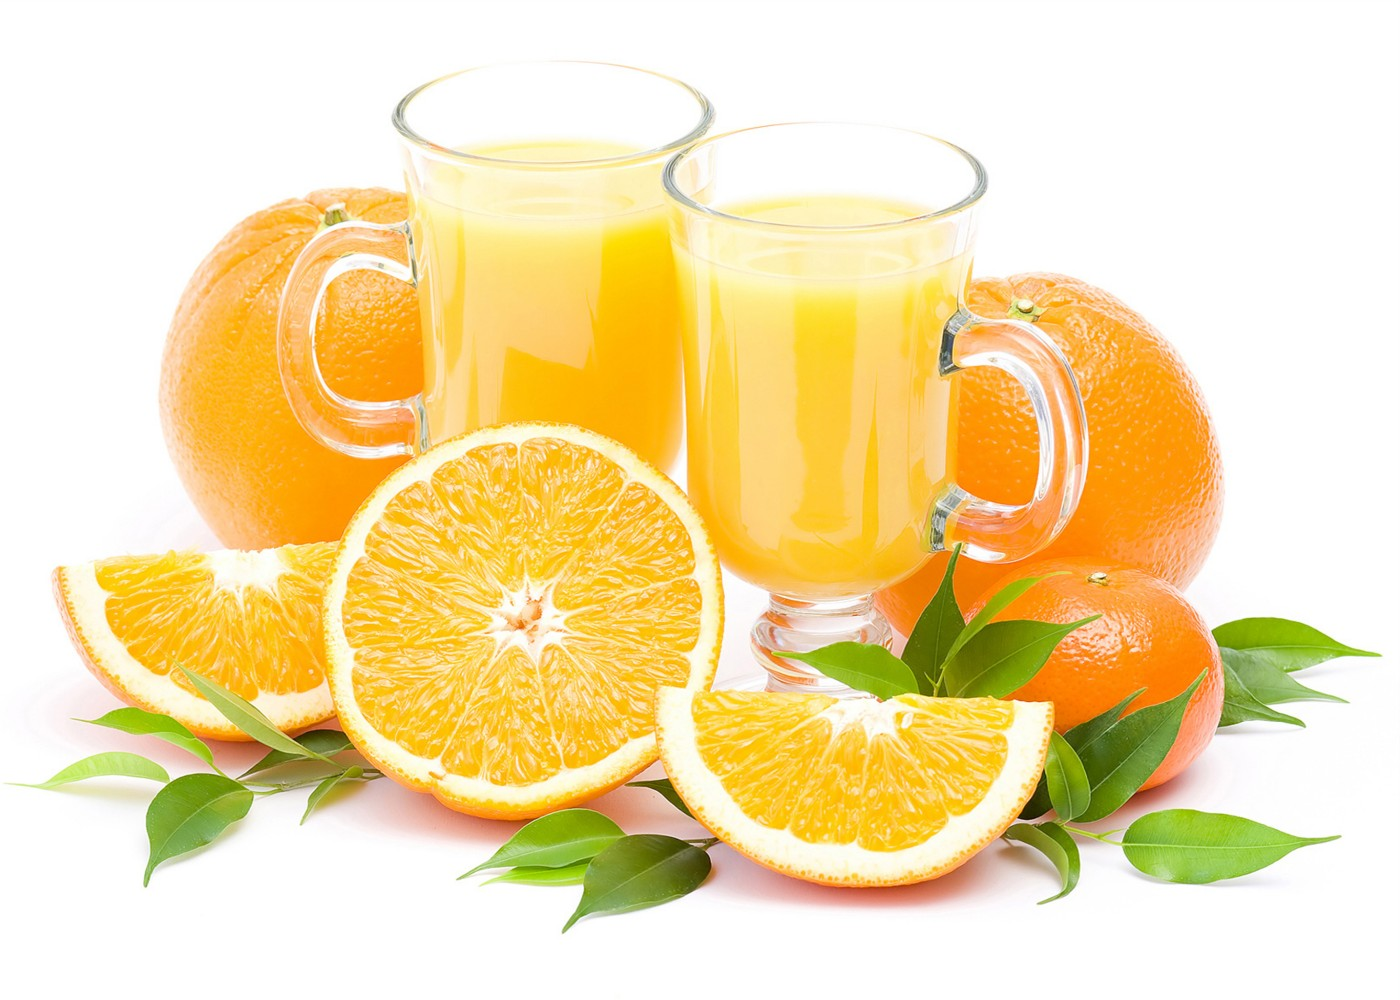 Orange-Juice-Wallpaper-Full-HD.jpg